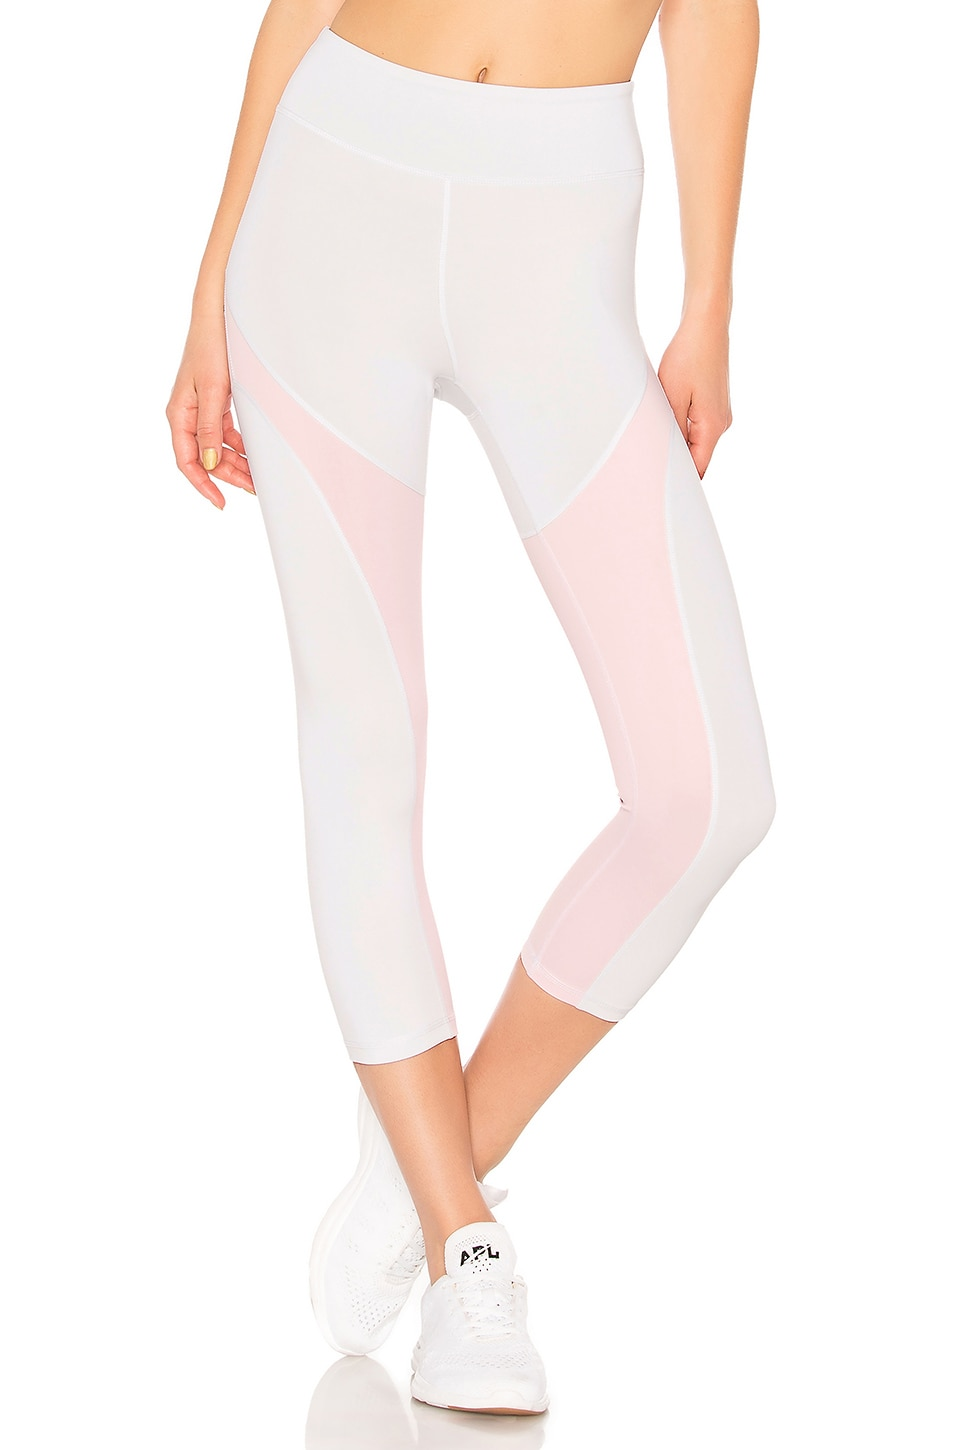 lovewave Madeline Pant in White & Peach Pink